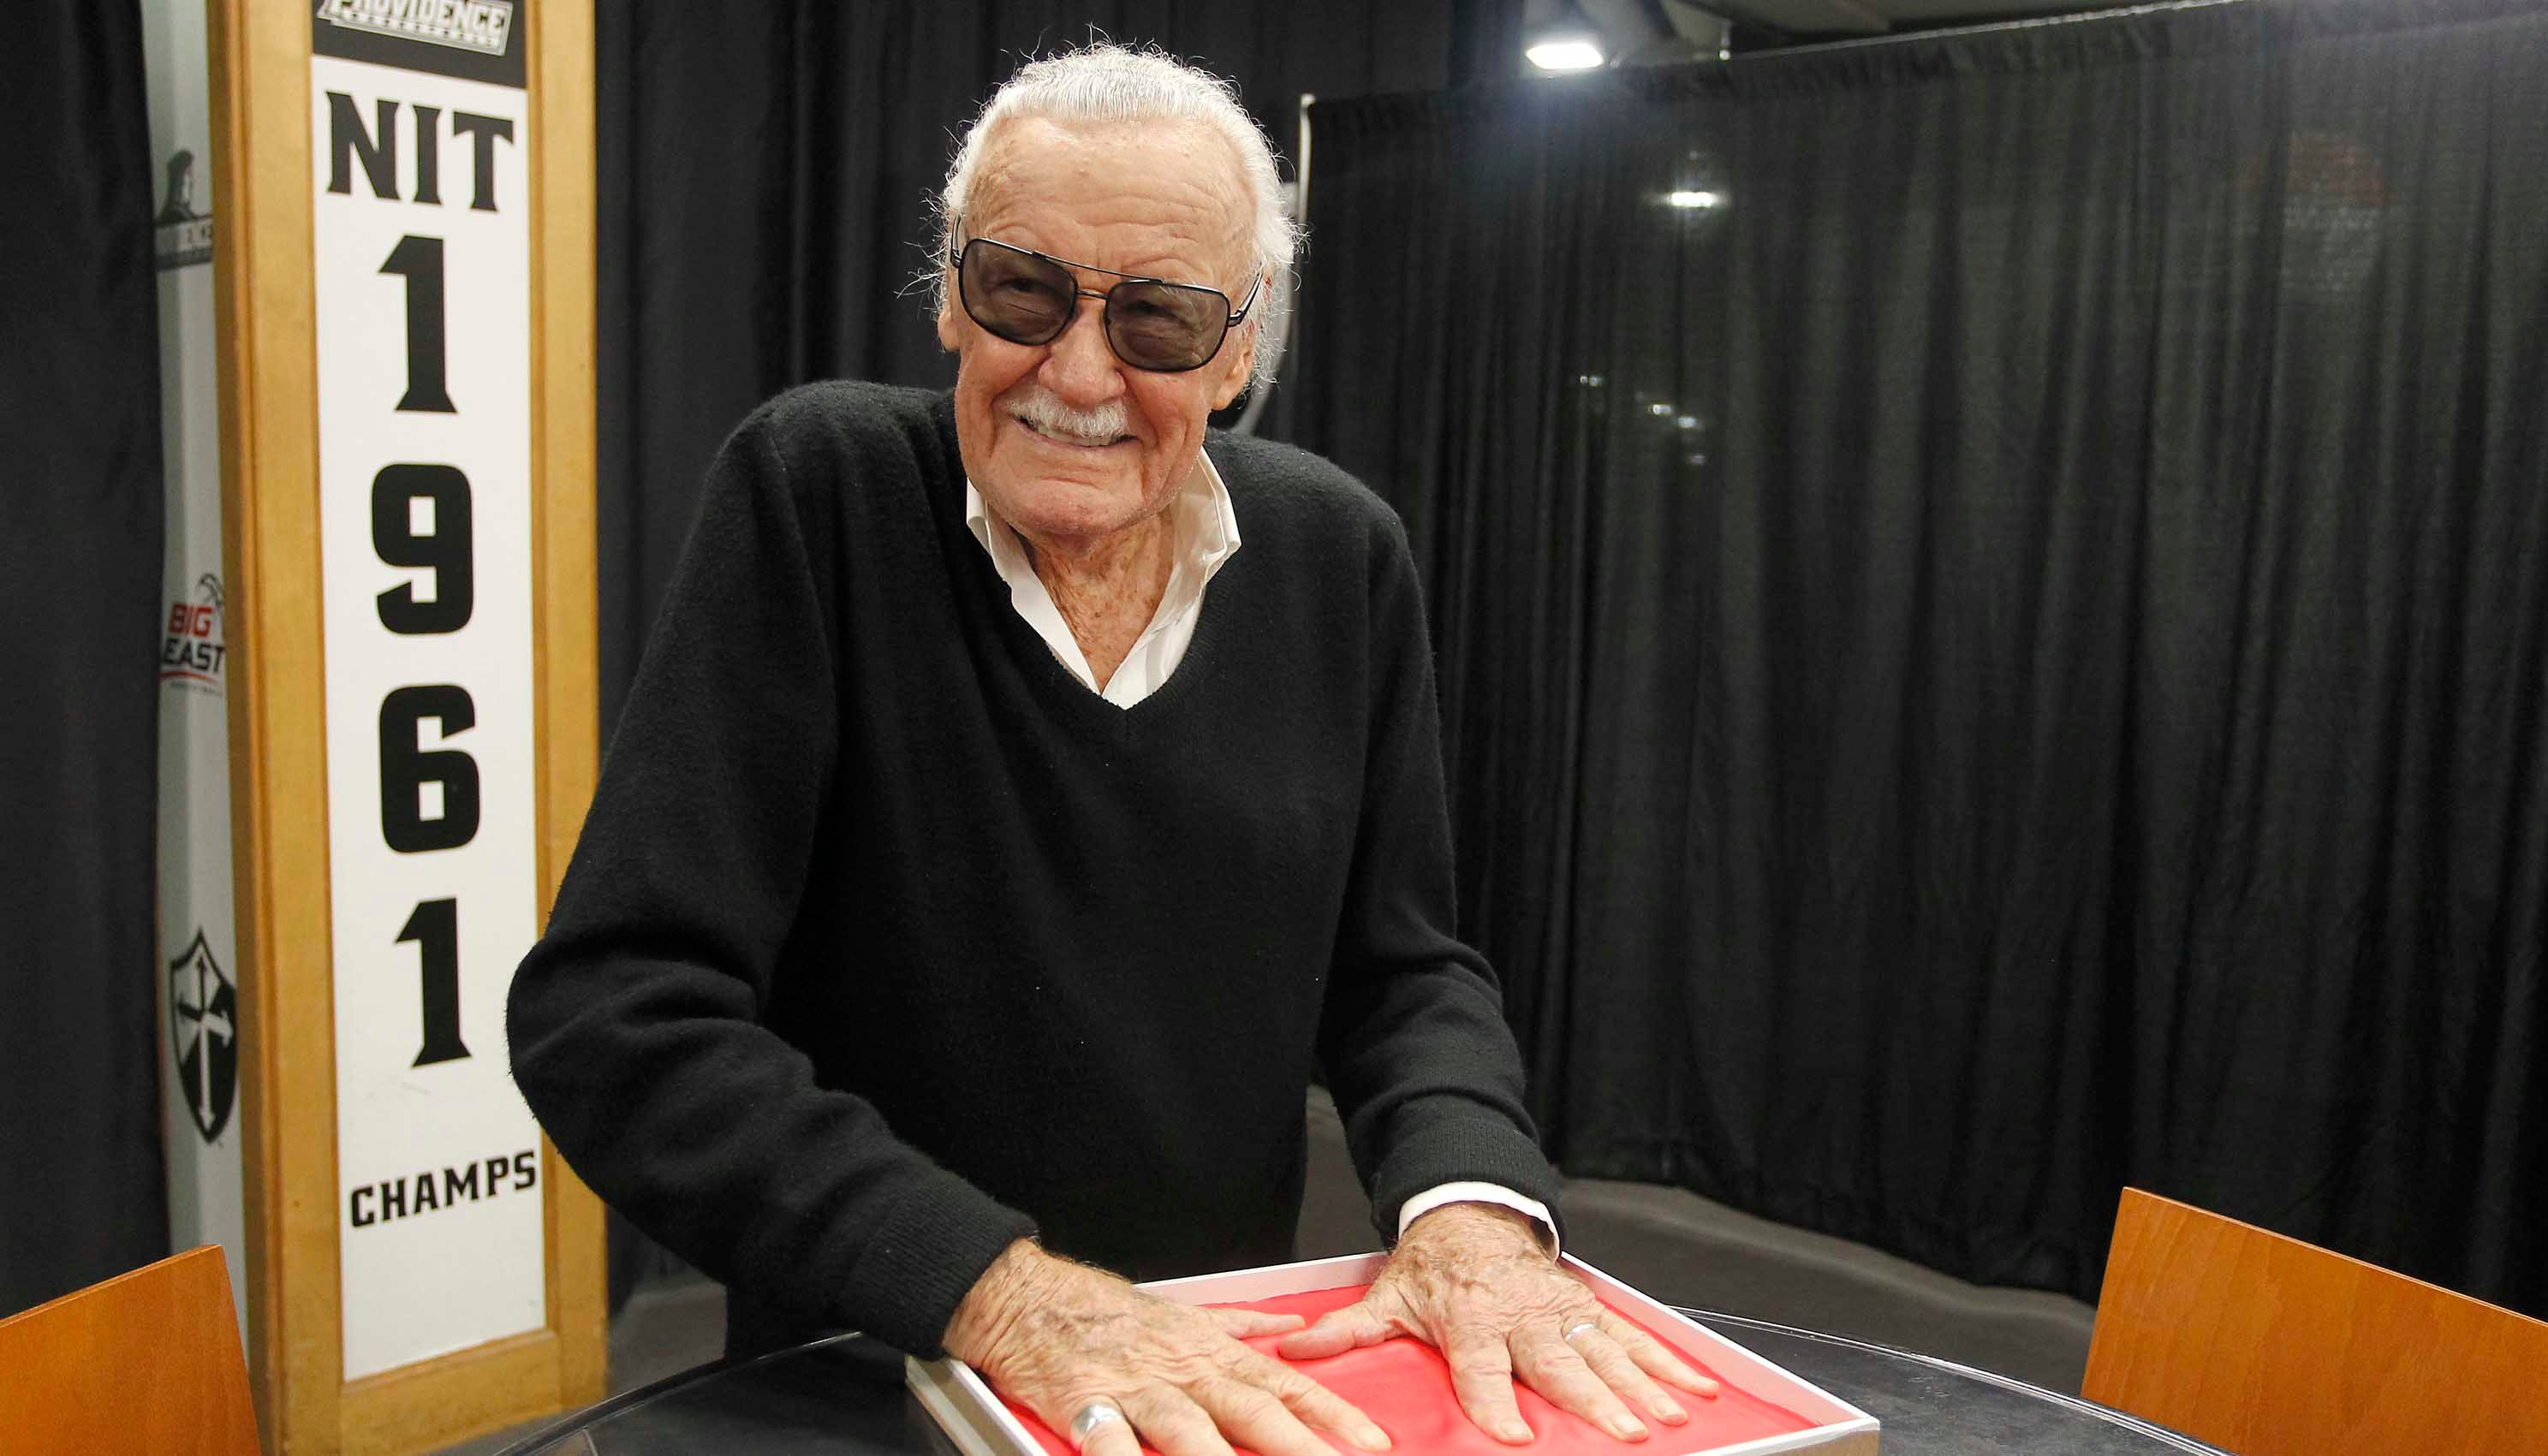 Los Angeles police have been investigating reports of elder abuse against Stan Lee. (Source: Stew Milne/AP Images for Hasbro, Inc.)